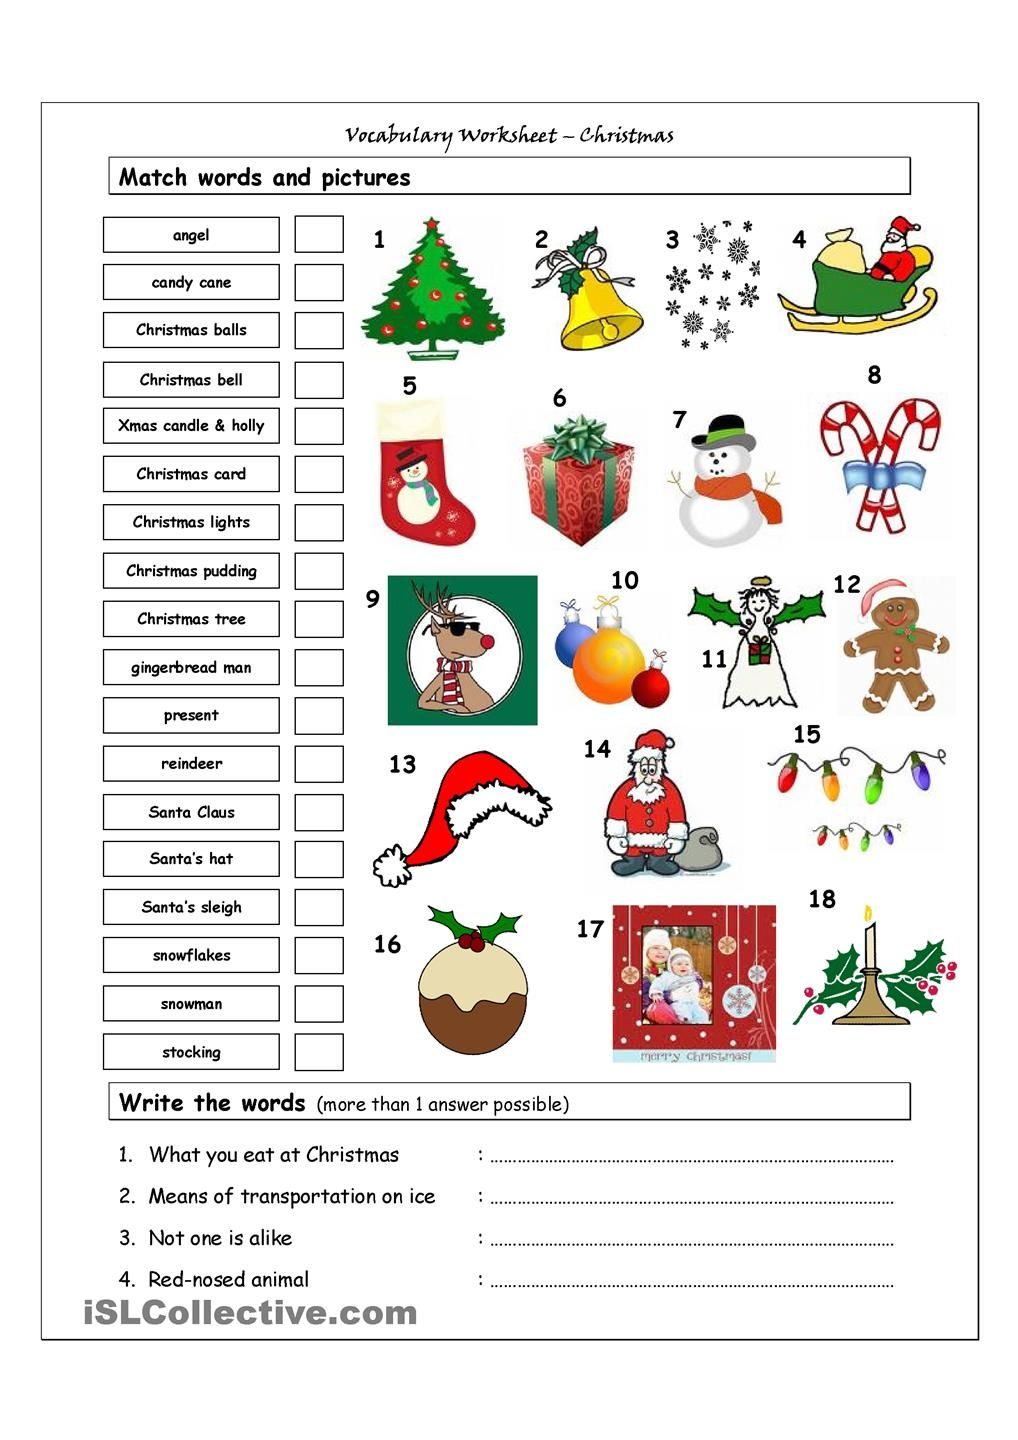 Worksheets Christmas Worksheet vocabulary quizes and worksheets on pinterest worksheet containing christmas it has two sections match words pictures matching exercise write the reading and